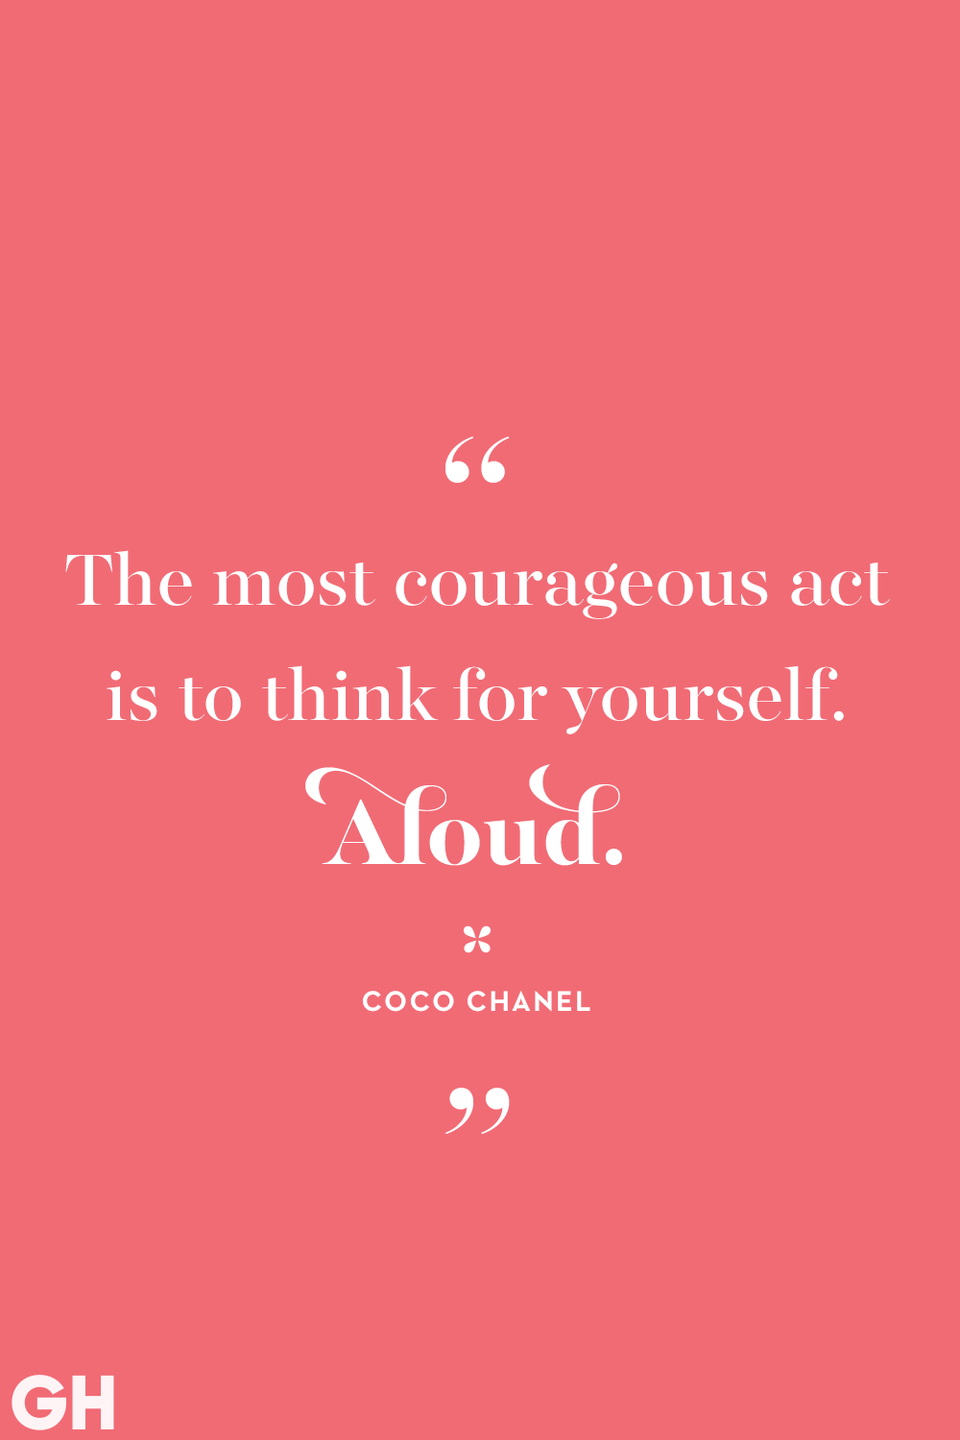 <p>The most courageous act is to think for yourself. Aloud.</p>